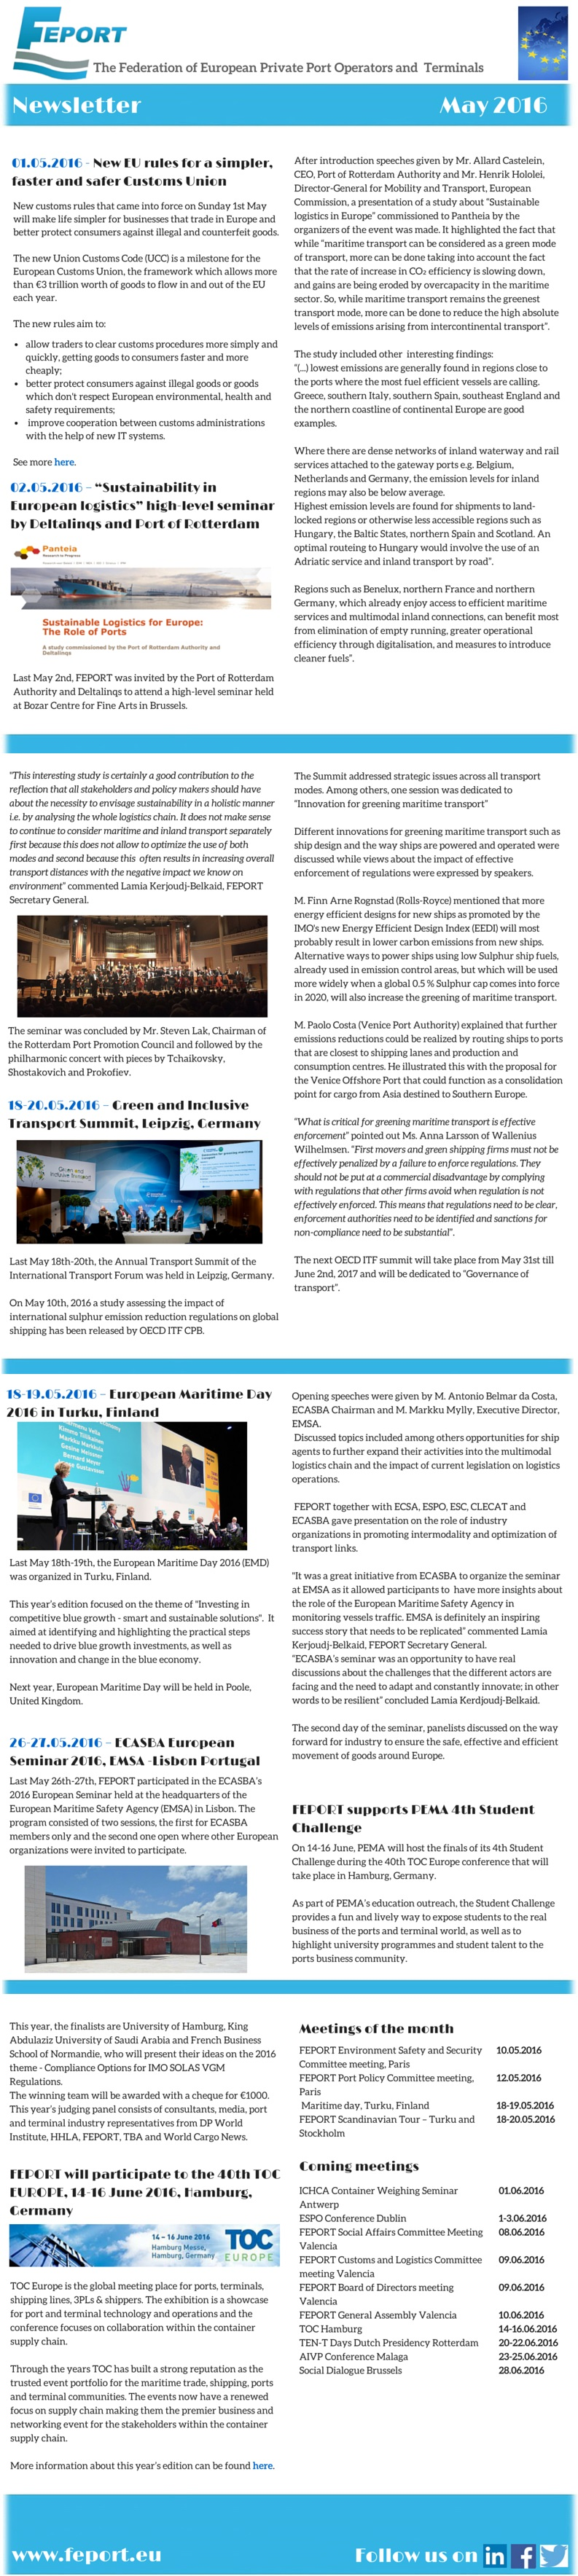 FEPORT External Newsletter May 2016 all